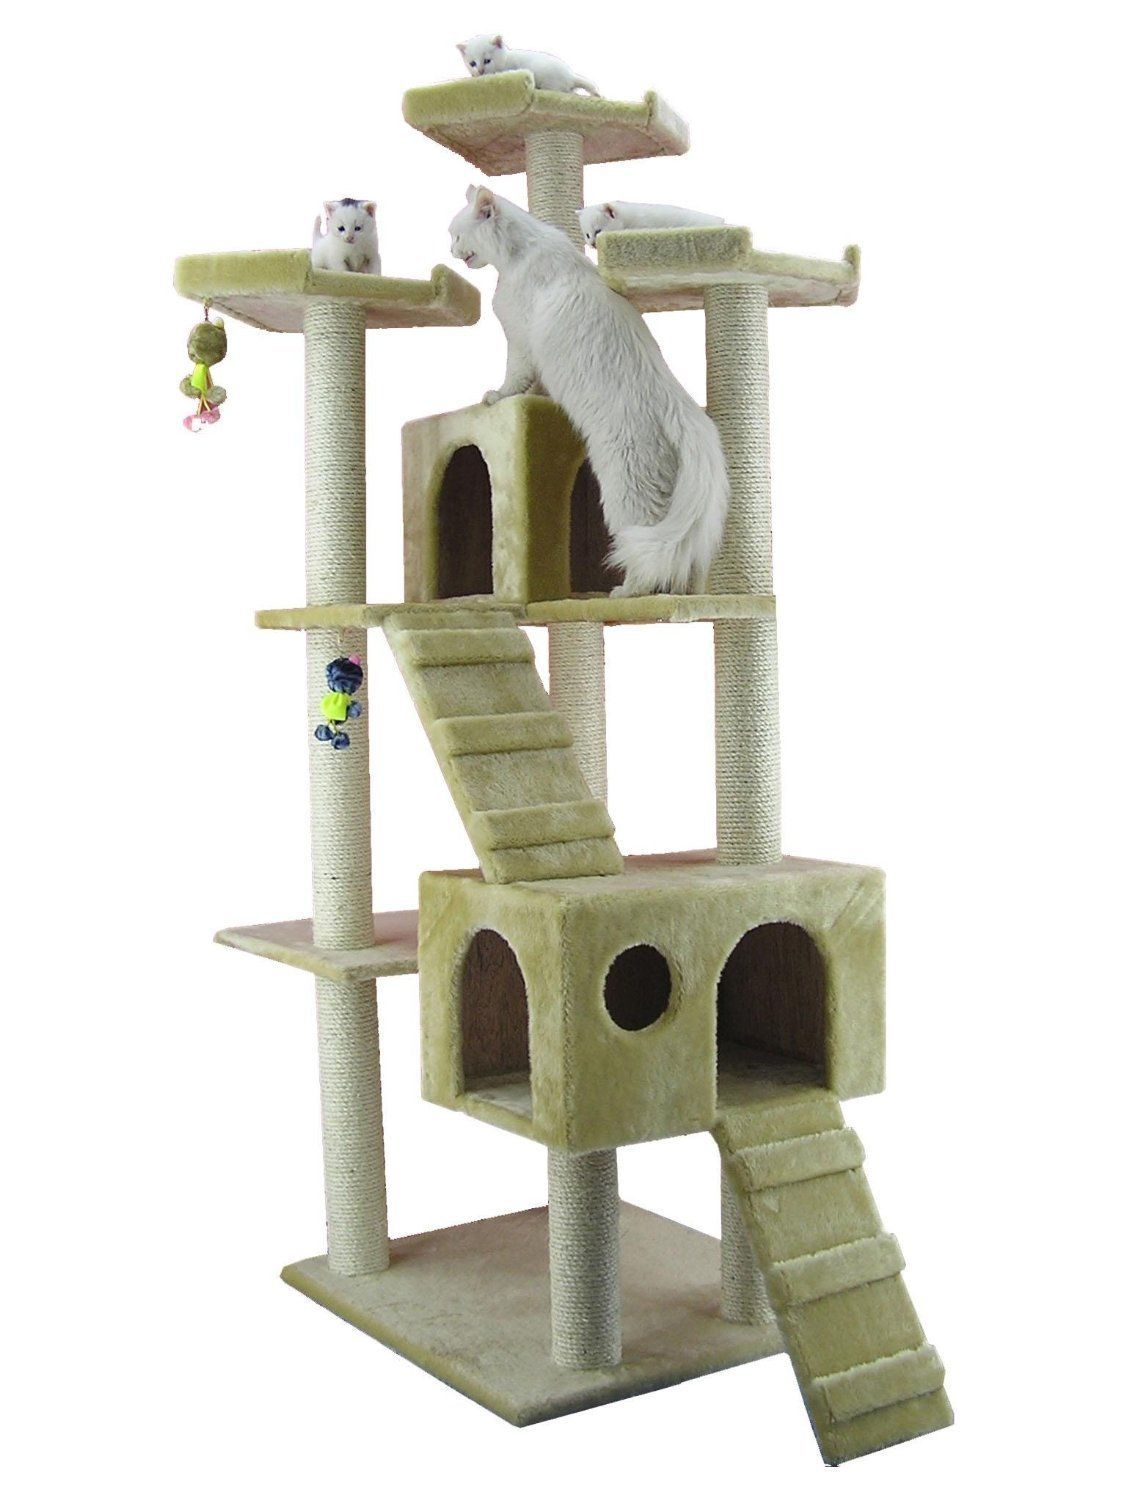 Cat tree furniture condo sleep play house fun exercise for Interesting cat trees